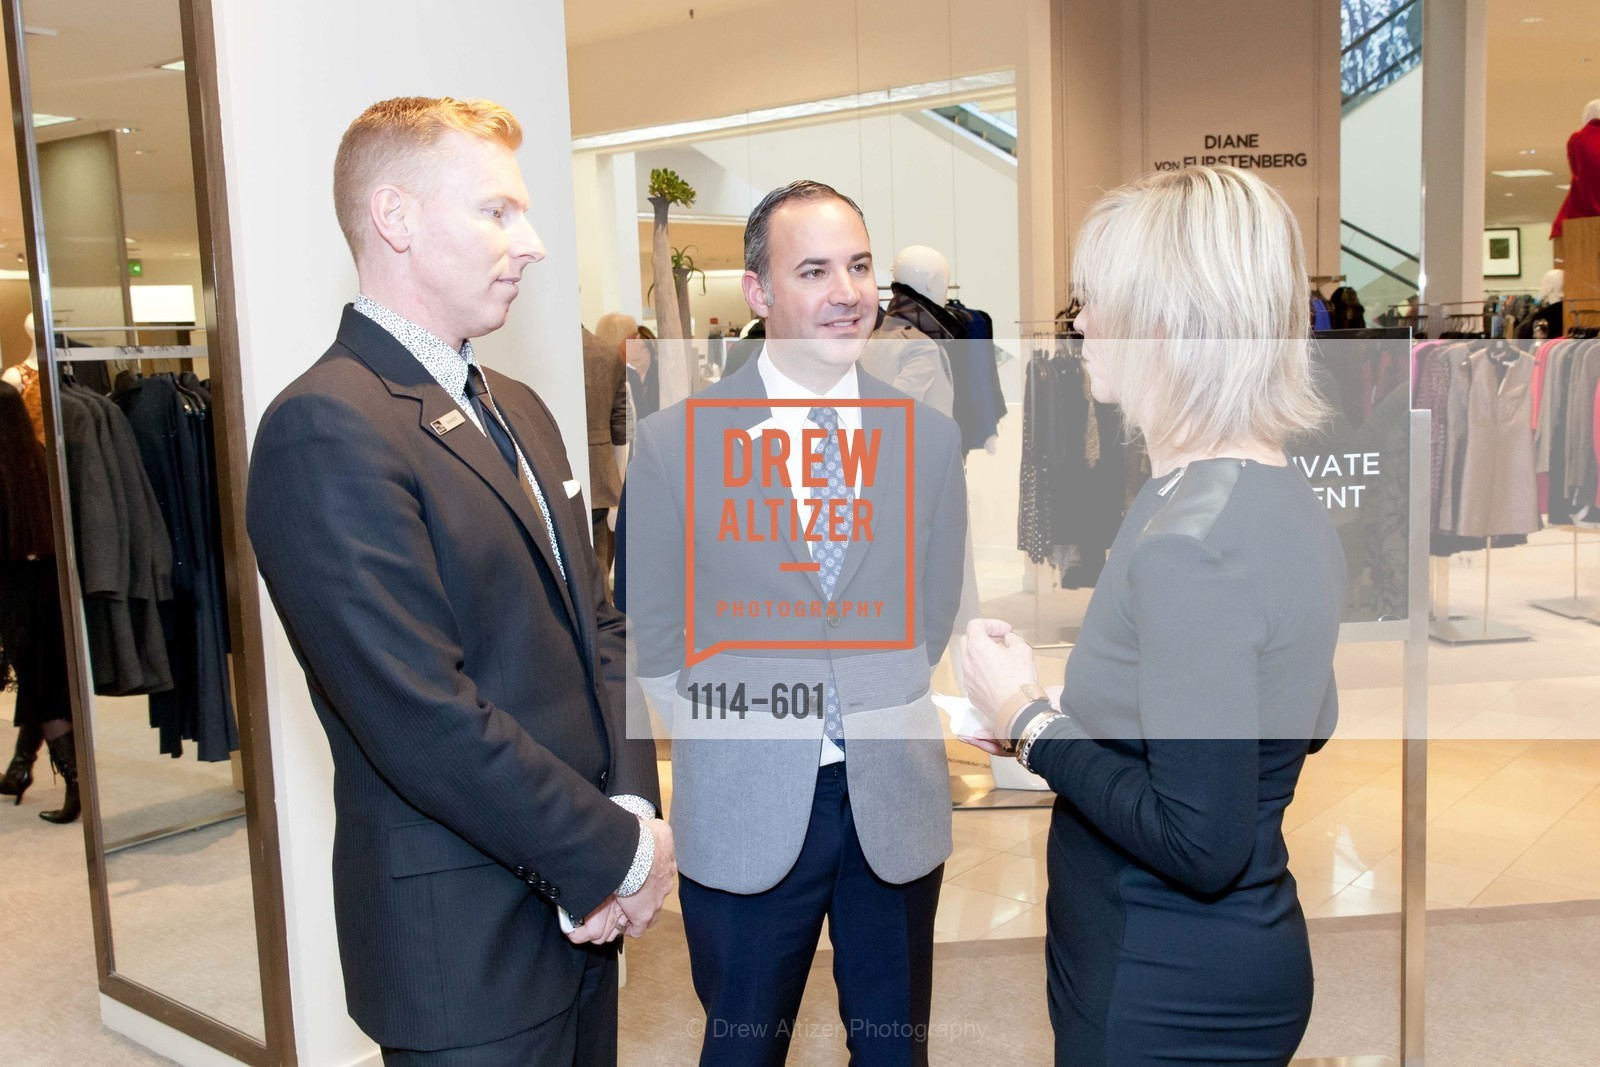 Randy Moore, Avril Graham, Robert Arnold-Kraft, SAKS FIFTH AVENUE and HARPER'S BAZAAR Host the San Francisco Yacht Club, US, October 9th, 2014,Drew Altizer, Drew Altizer Photography, full-service event agency, private events, San Francisco photographer, photographer California